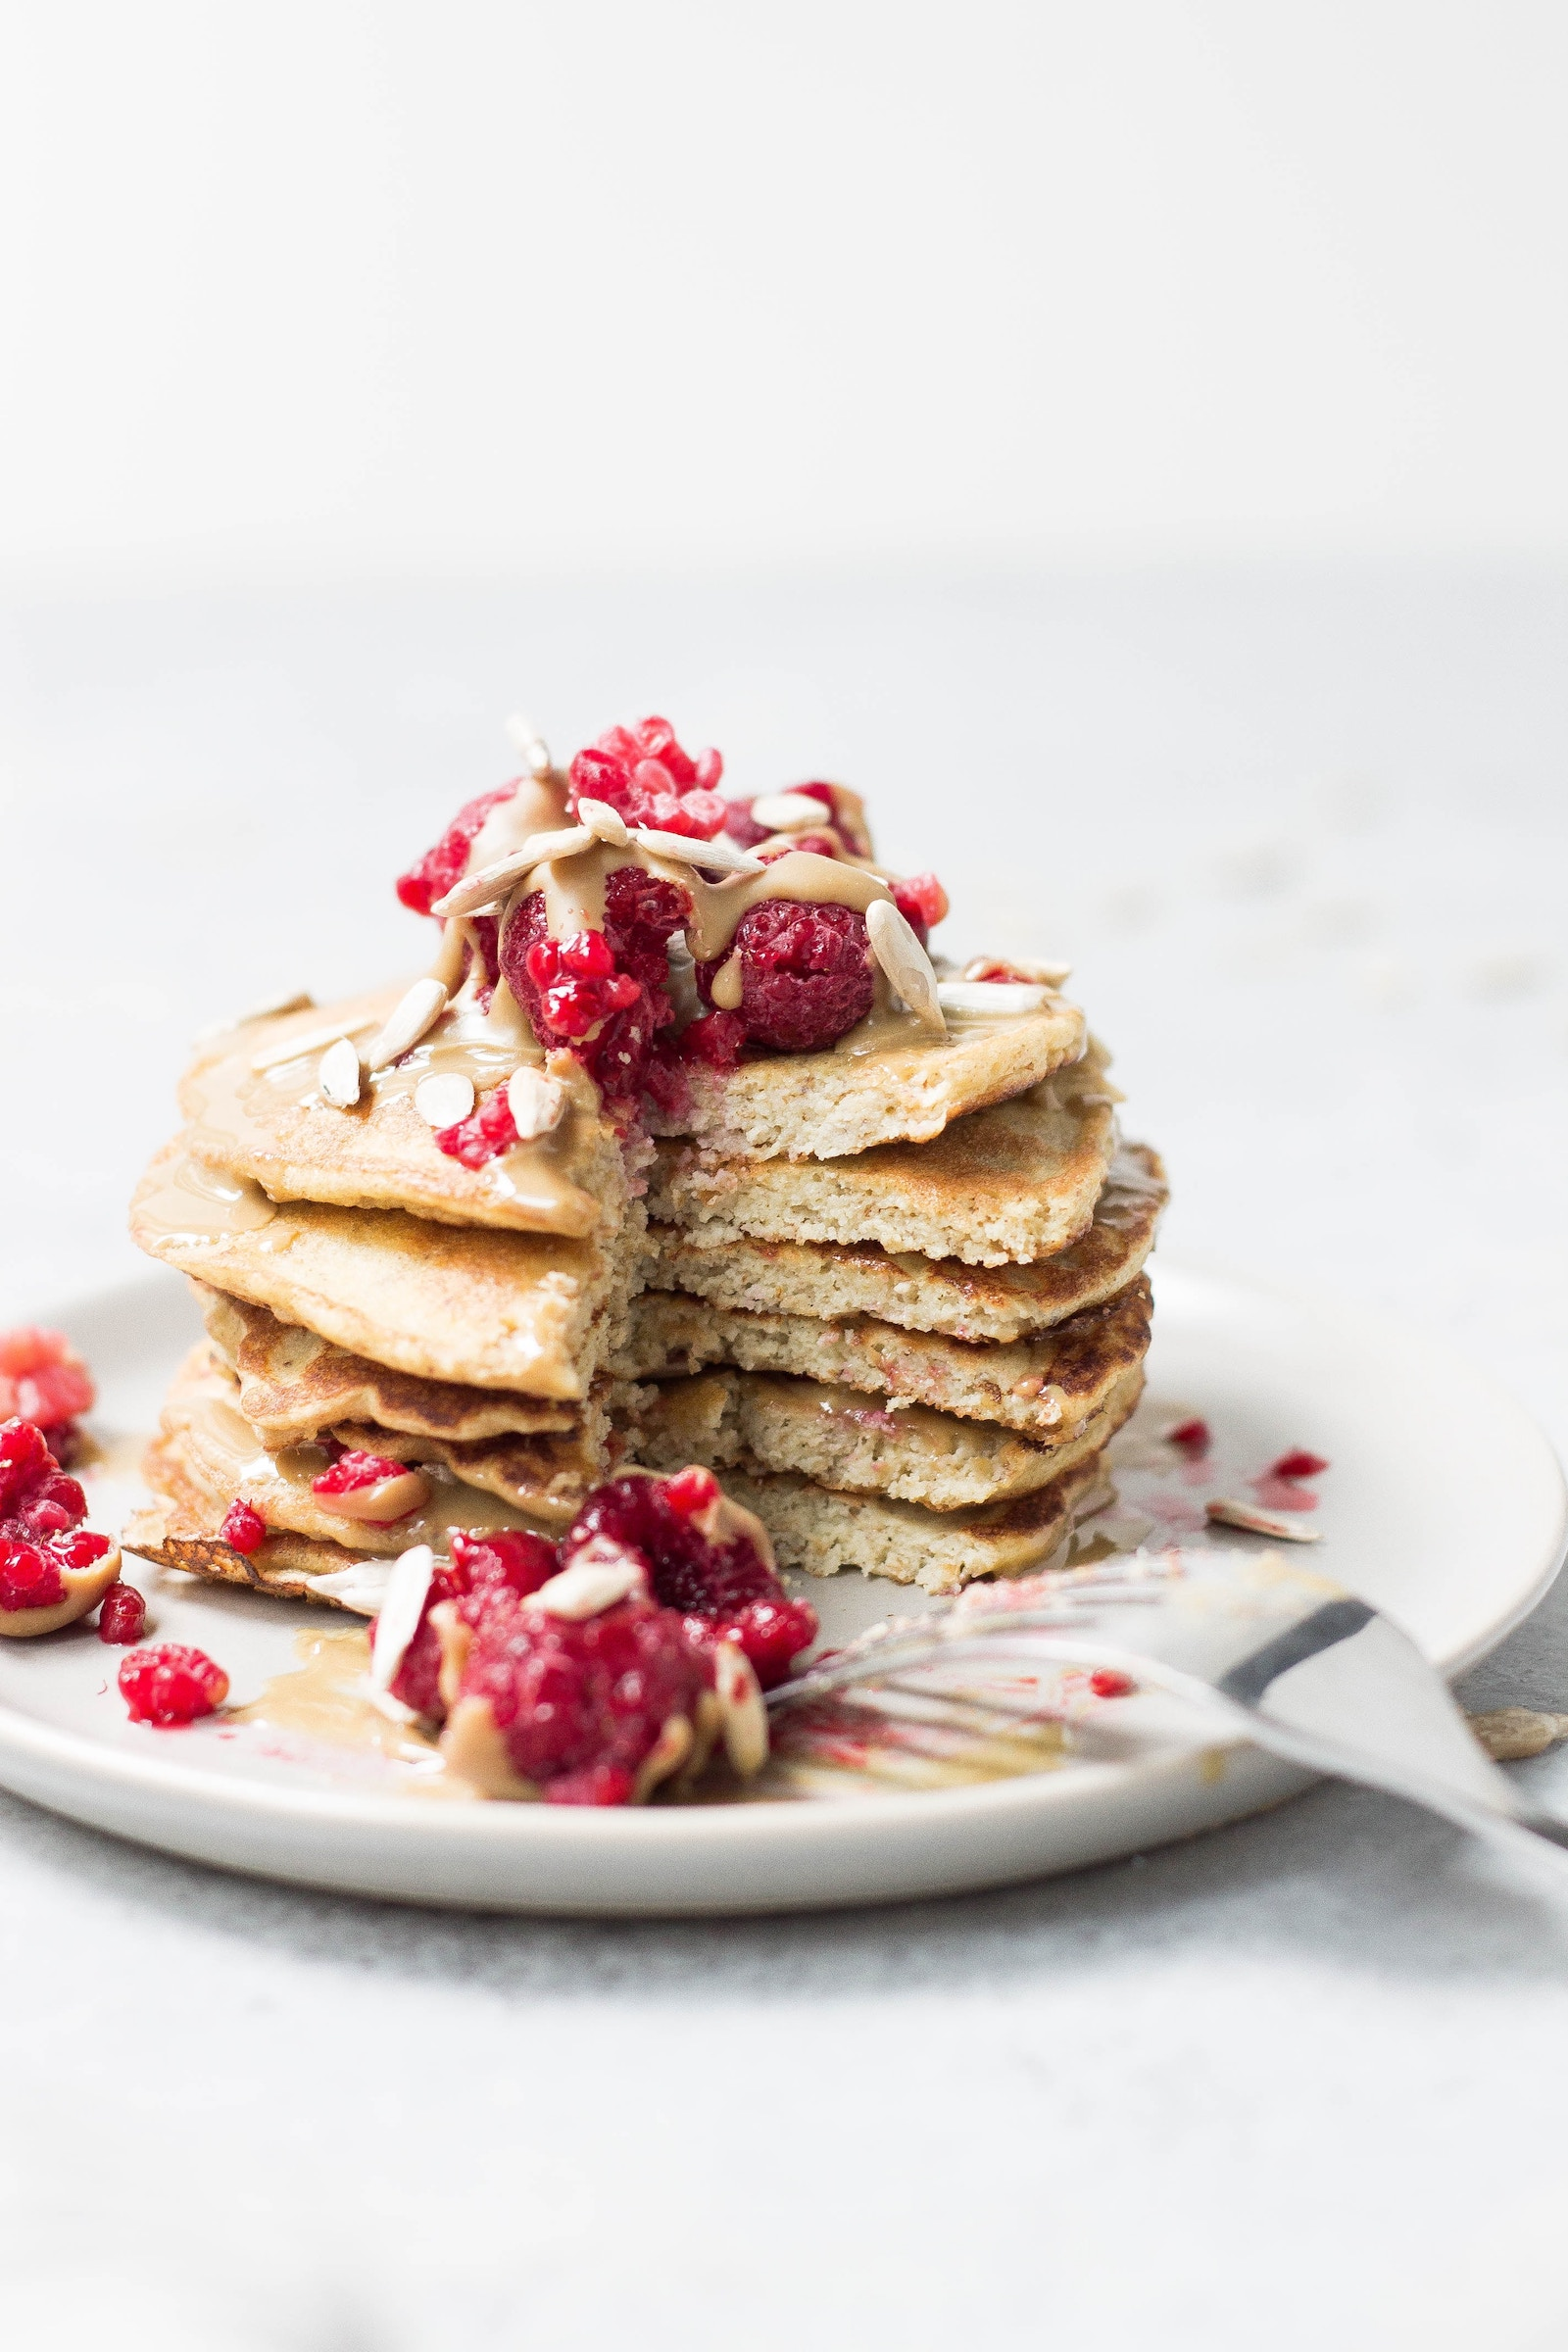 Peanut Butter Protein Pancakes Rezept - Photo by Alison Marras on Unsplash